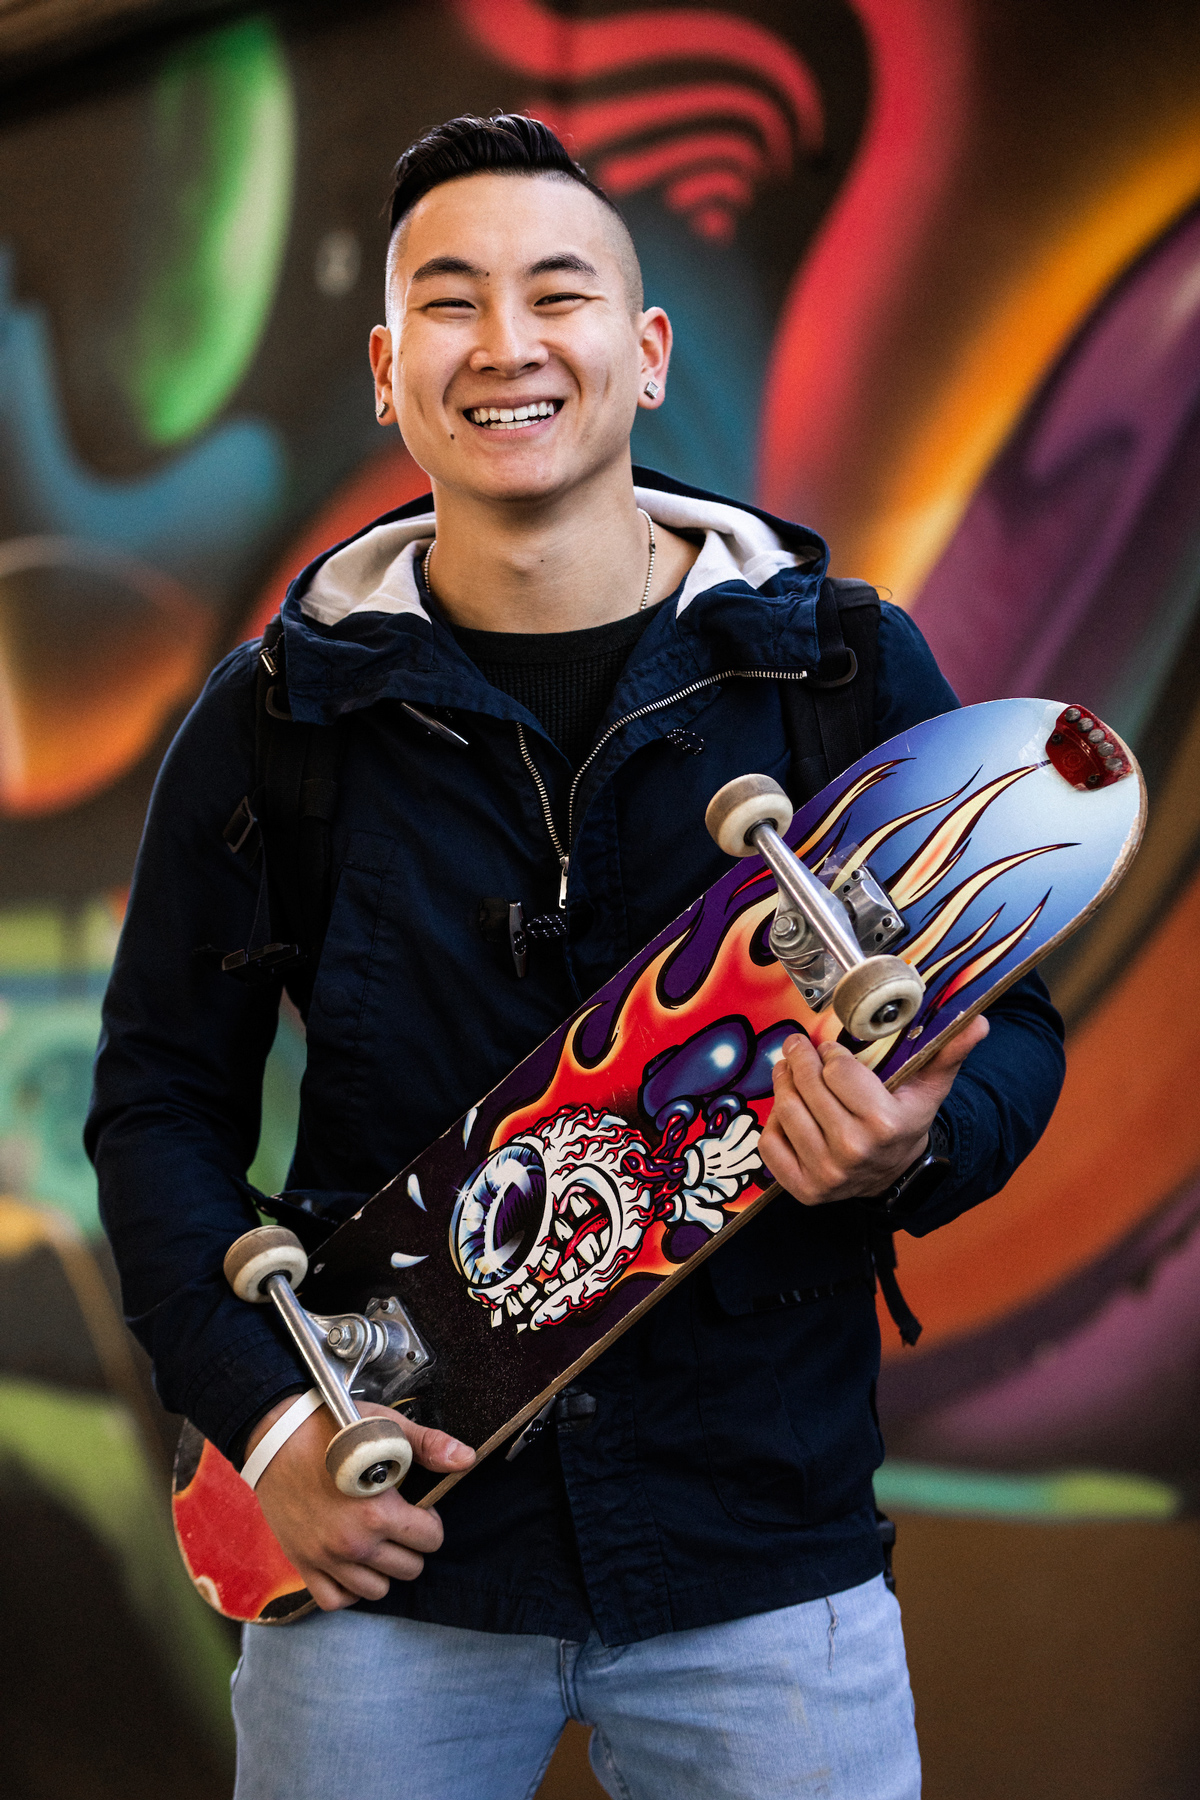 Dan Redznak holding a skateboard and smiling.